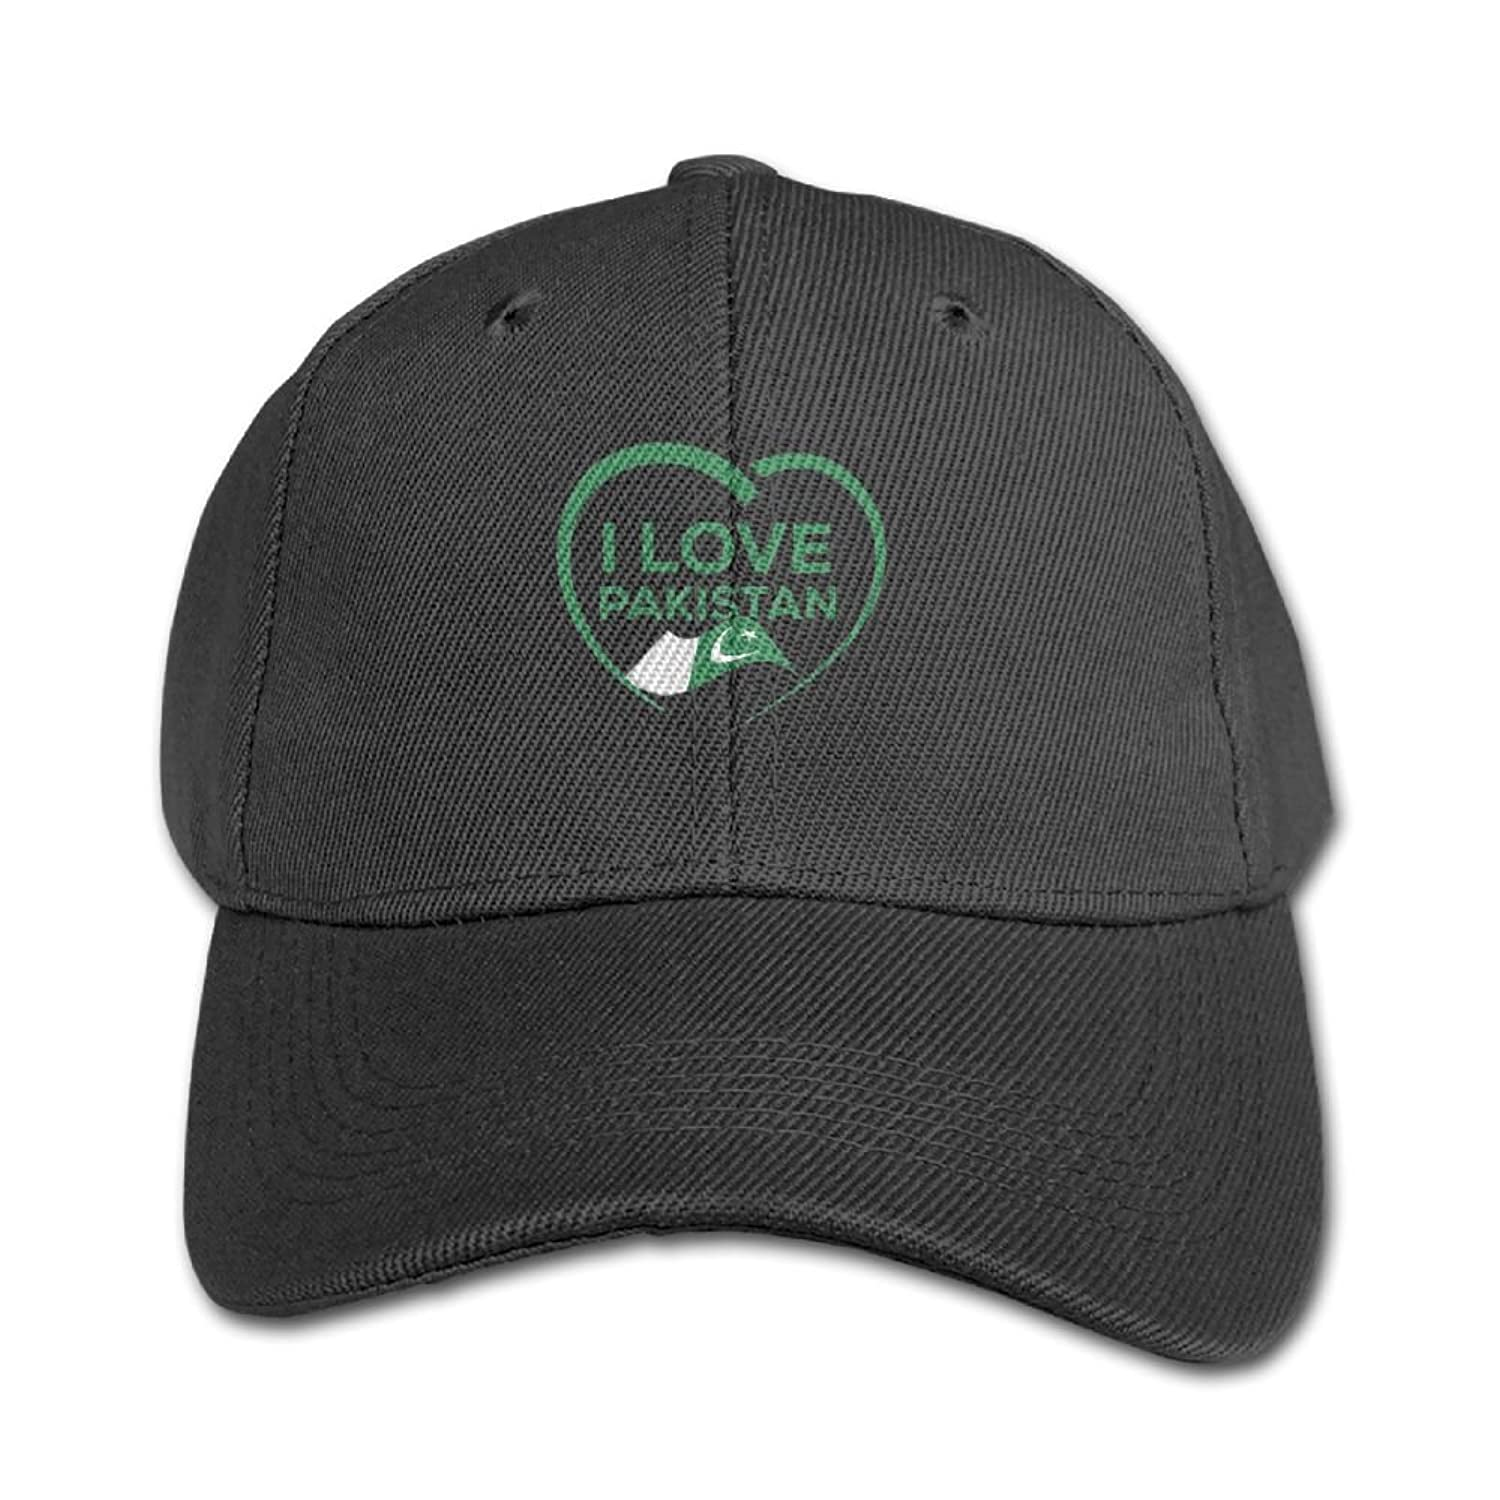 I Love Pakistan with Outline of Heart and Flag Unisex Design 100% Cotton Snapback Hip-Hop Hat Flat Peaked Baseball Cap Adjustable Cap Hat for Boy &Girl Navy on sale